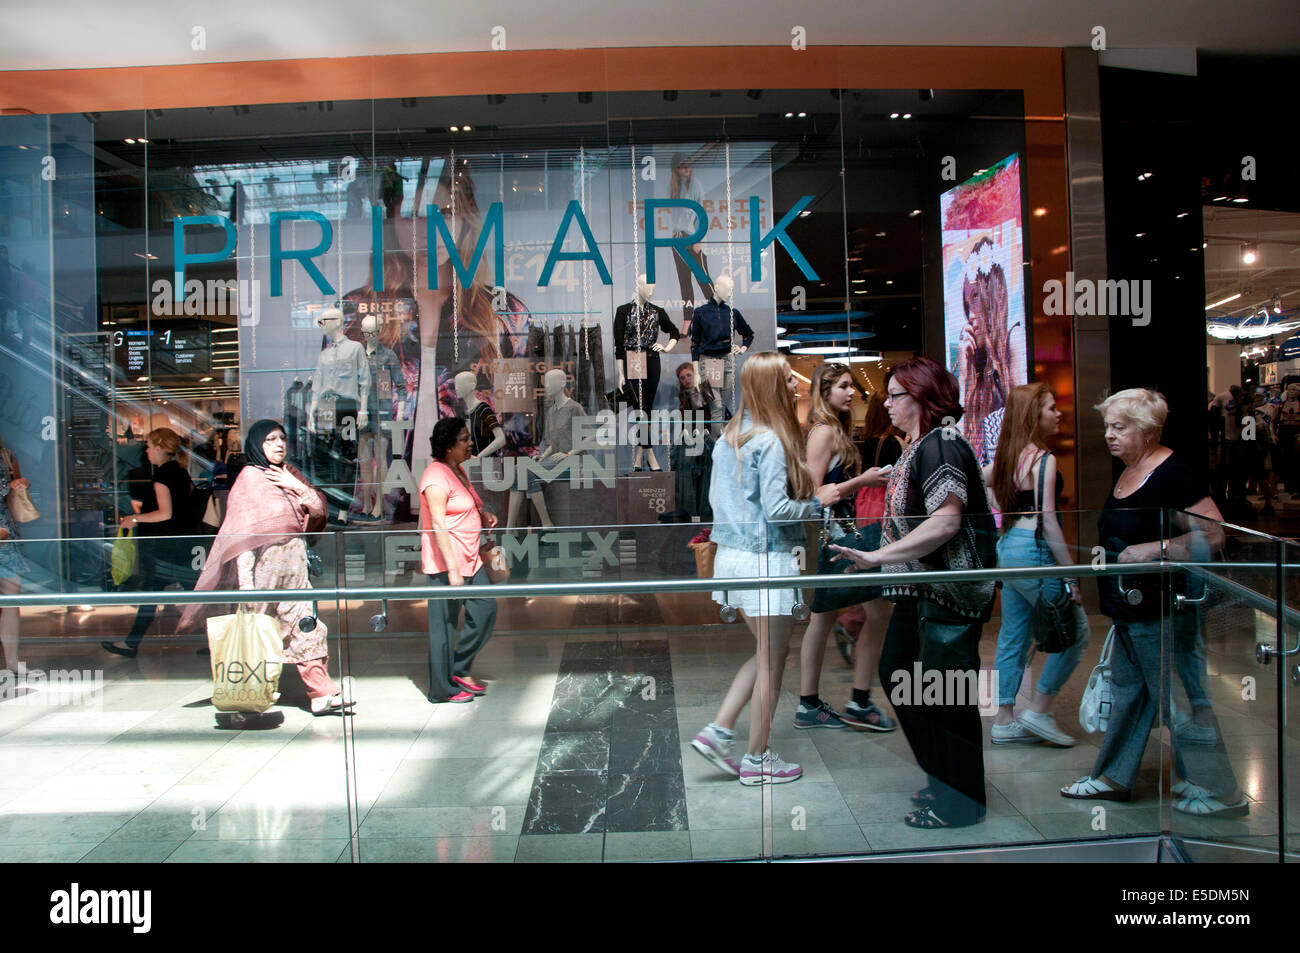 London July 2014. Westfield shopping centre, Stratford. Shoppers in front of Primark clothes shop. Stock Photo